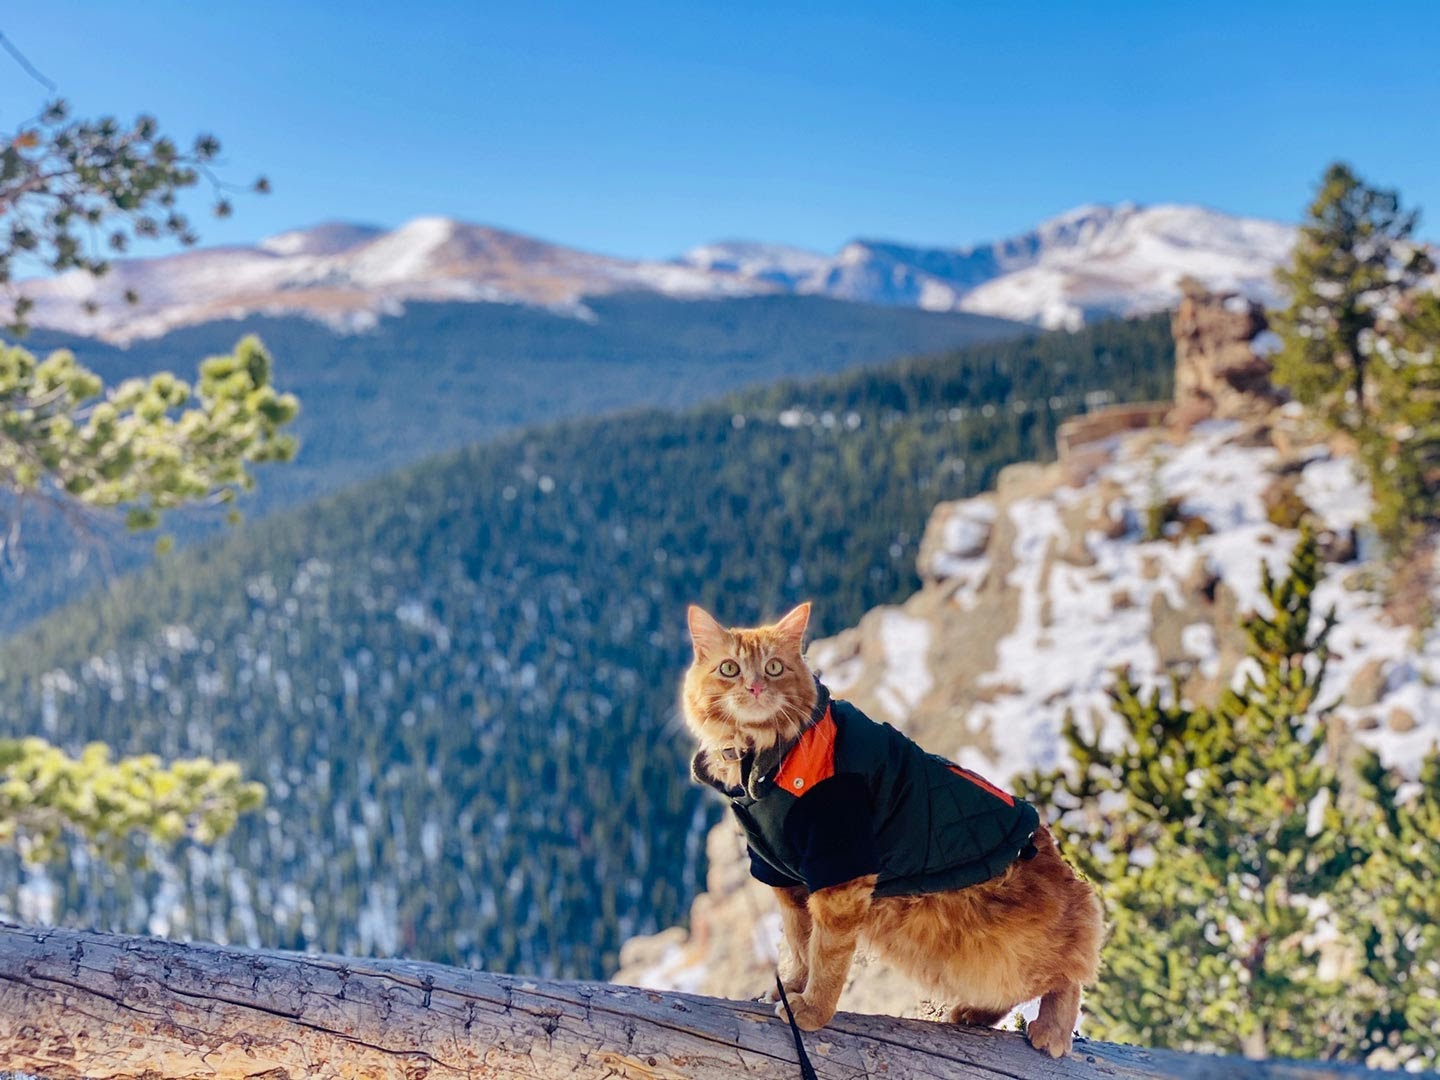 Cat in a jacket with mountains in the background